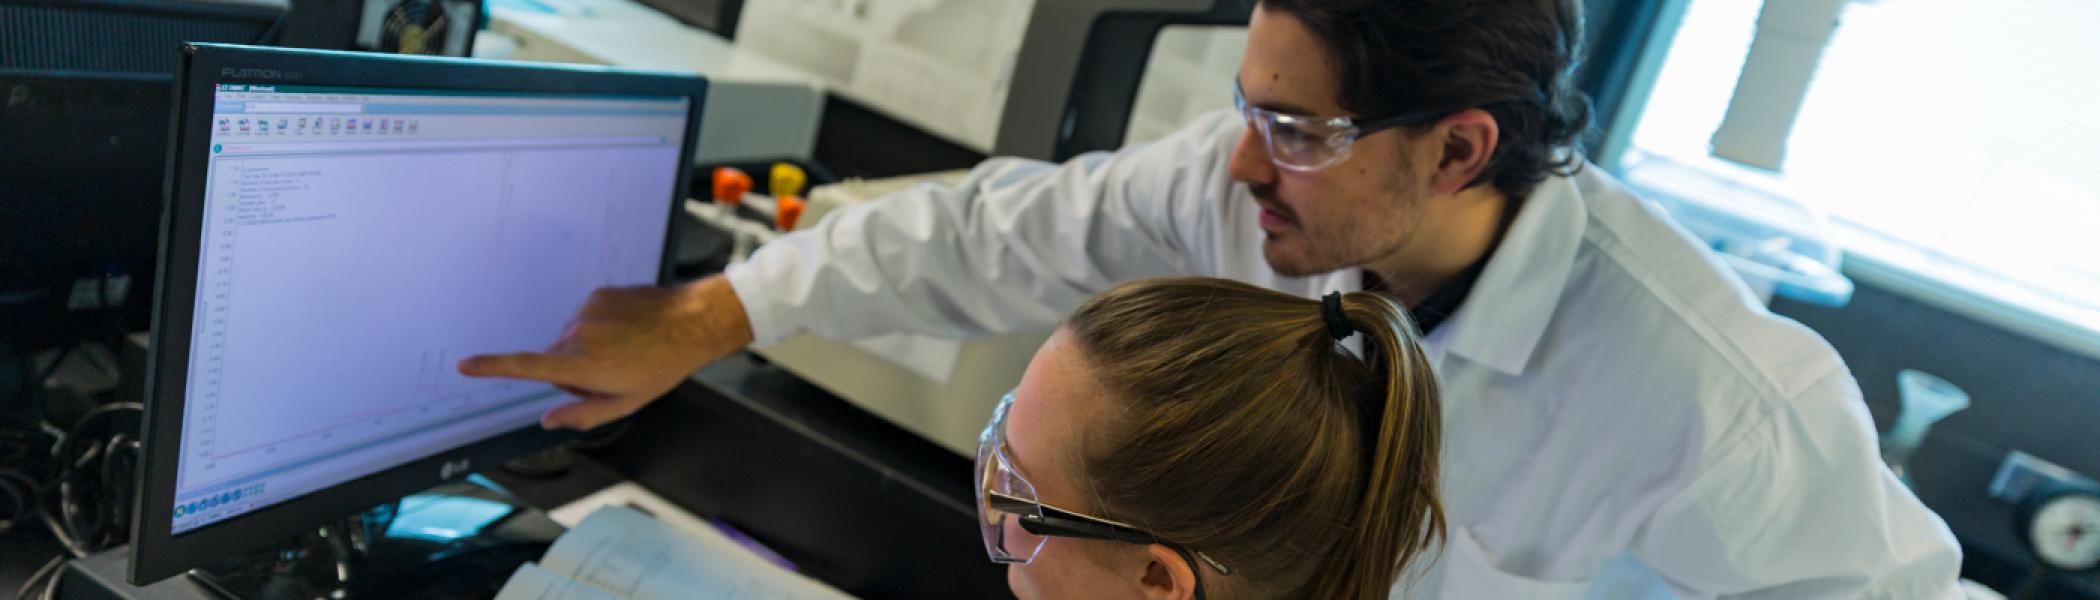 2 Chemistry students looking at an IR spectrum on a computer screen in a chemistry lab wearing white lab coats and safety glasses